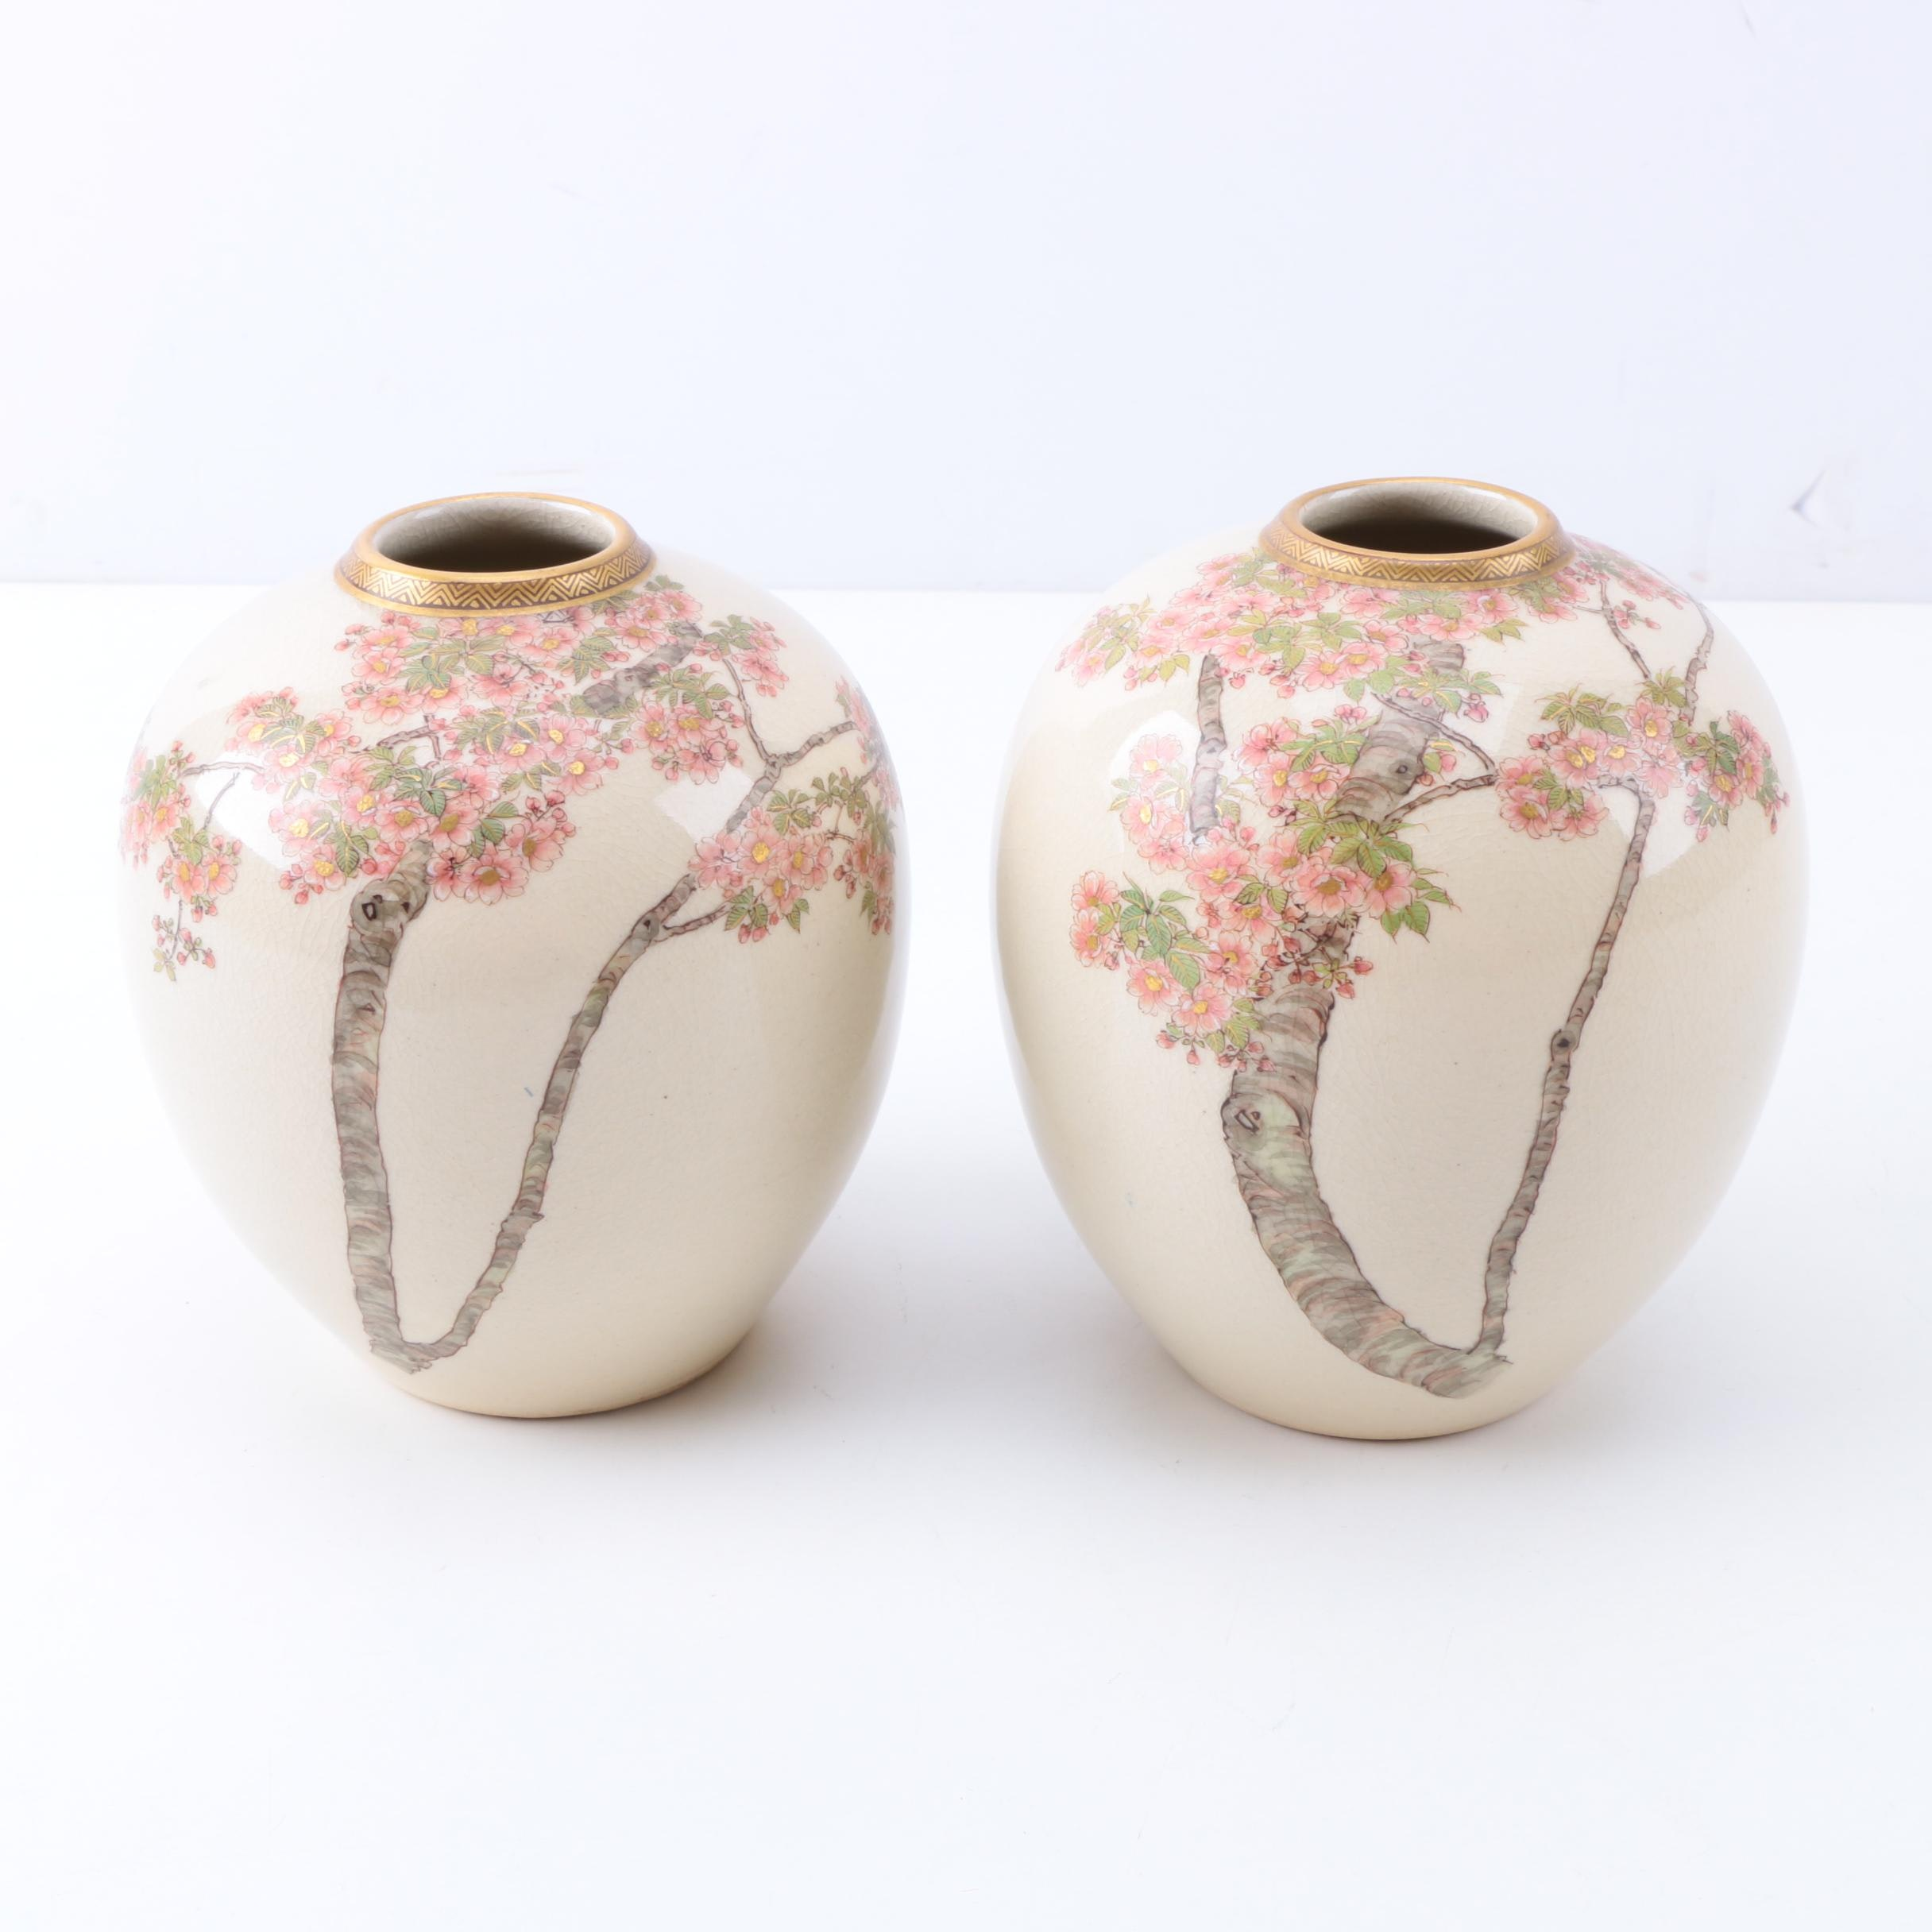 Pair of Japanese Vases with Hand-Painted Cherry Blossom Motif